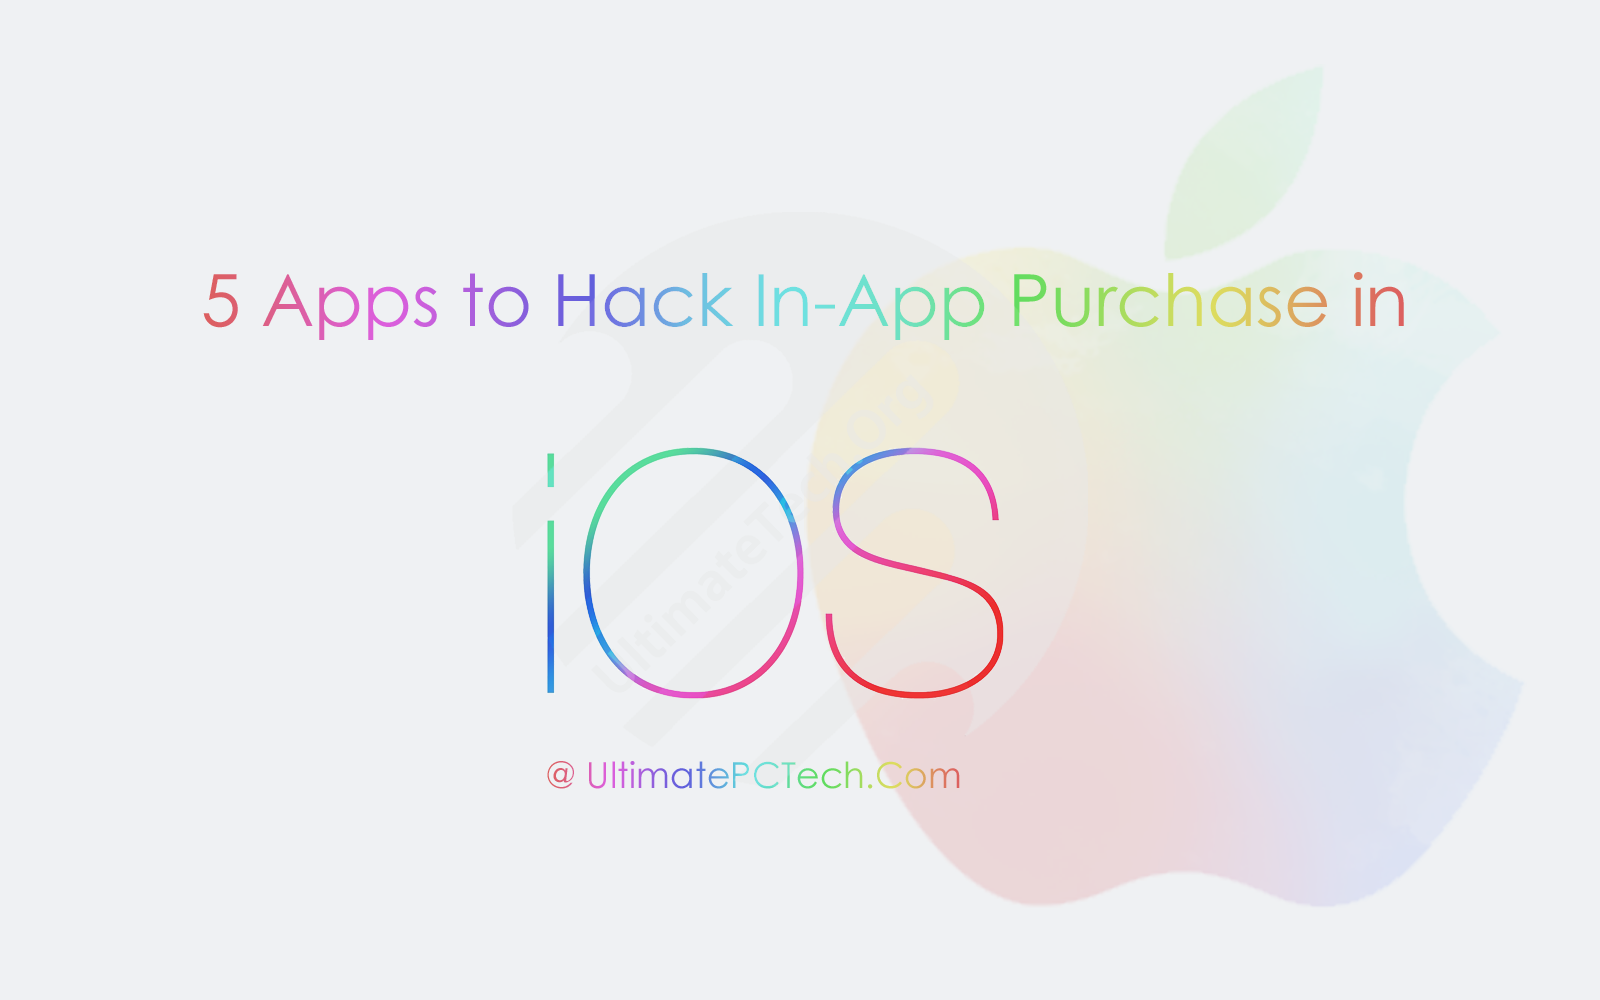 5 Apps to Hack In-App Purchase in iOS, iPhone and iPad - Ultimate Tech